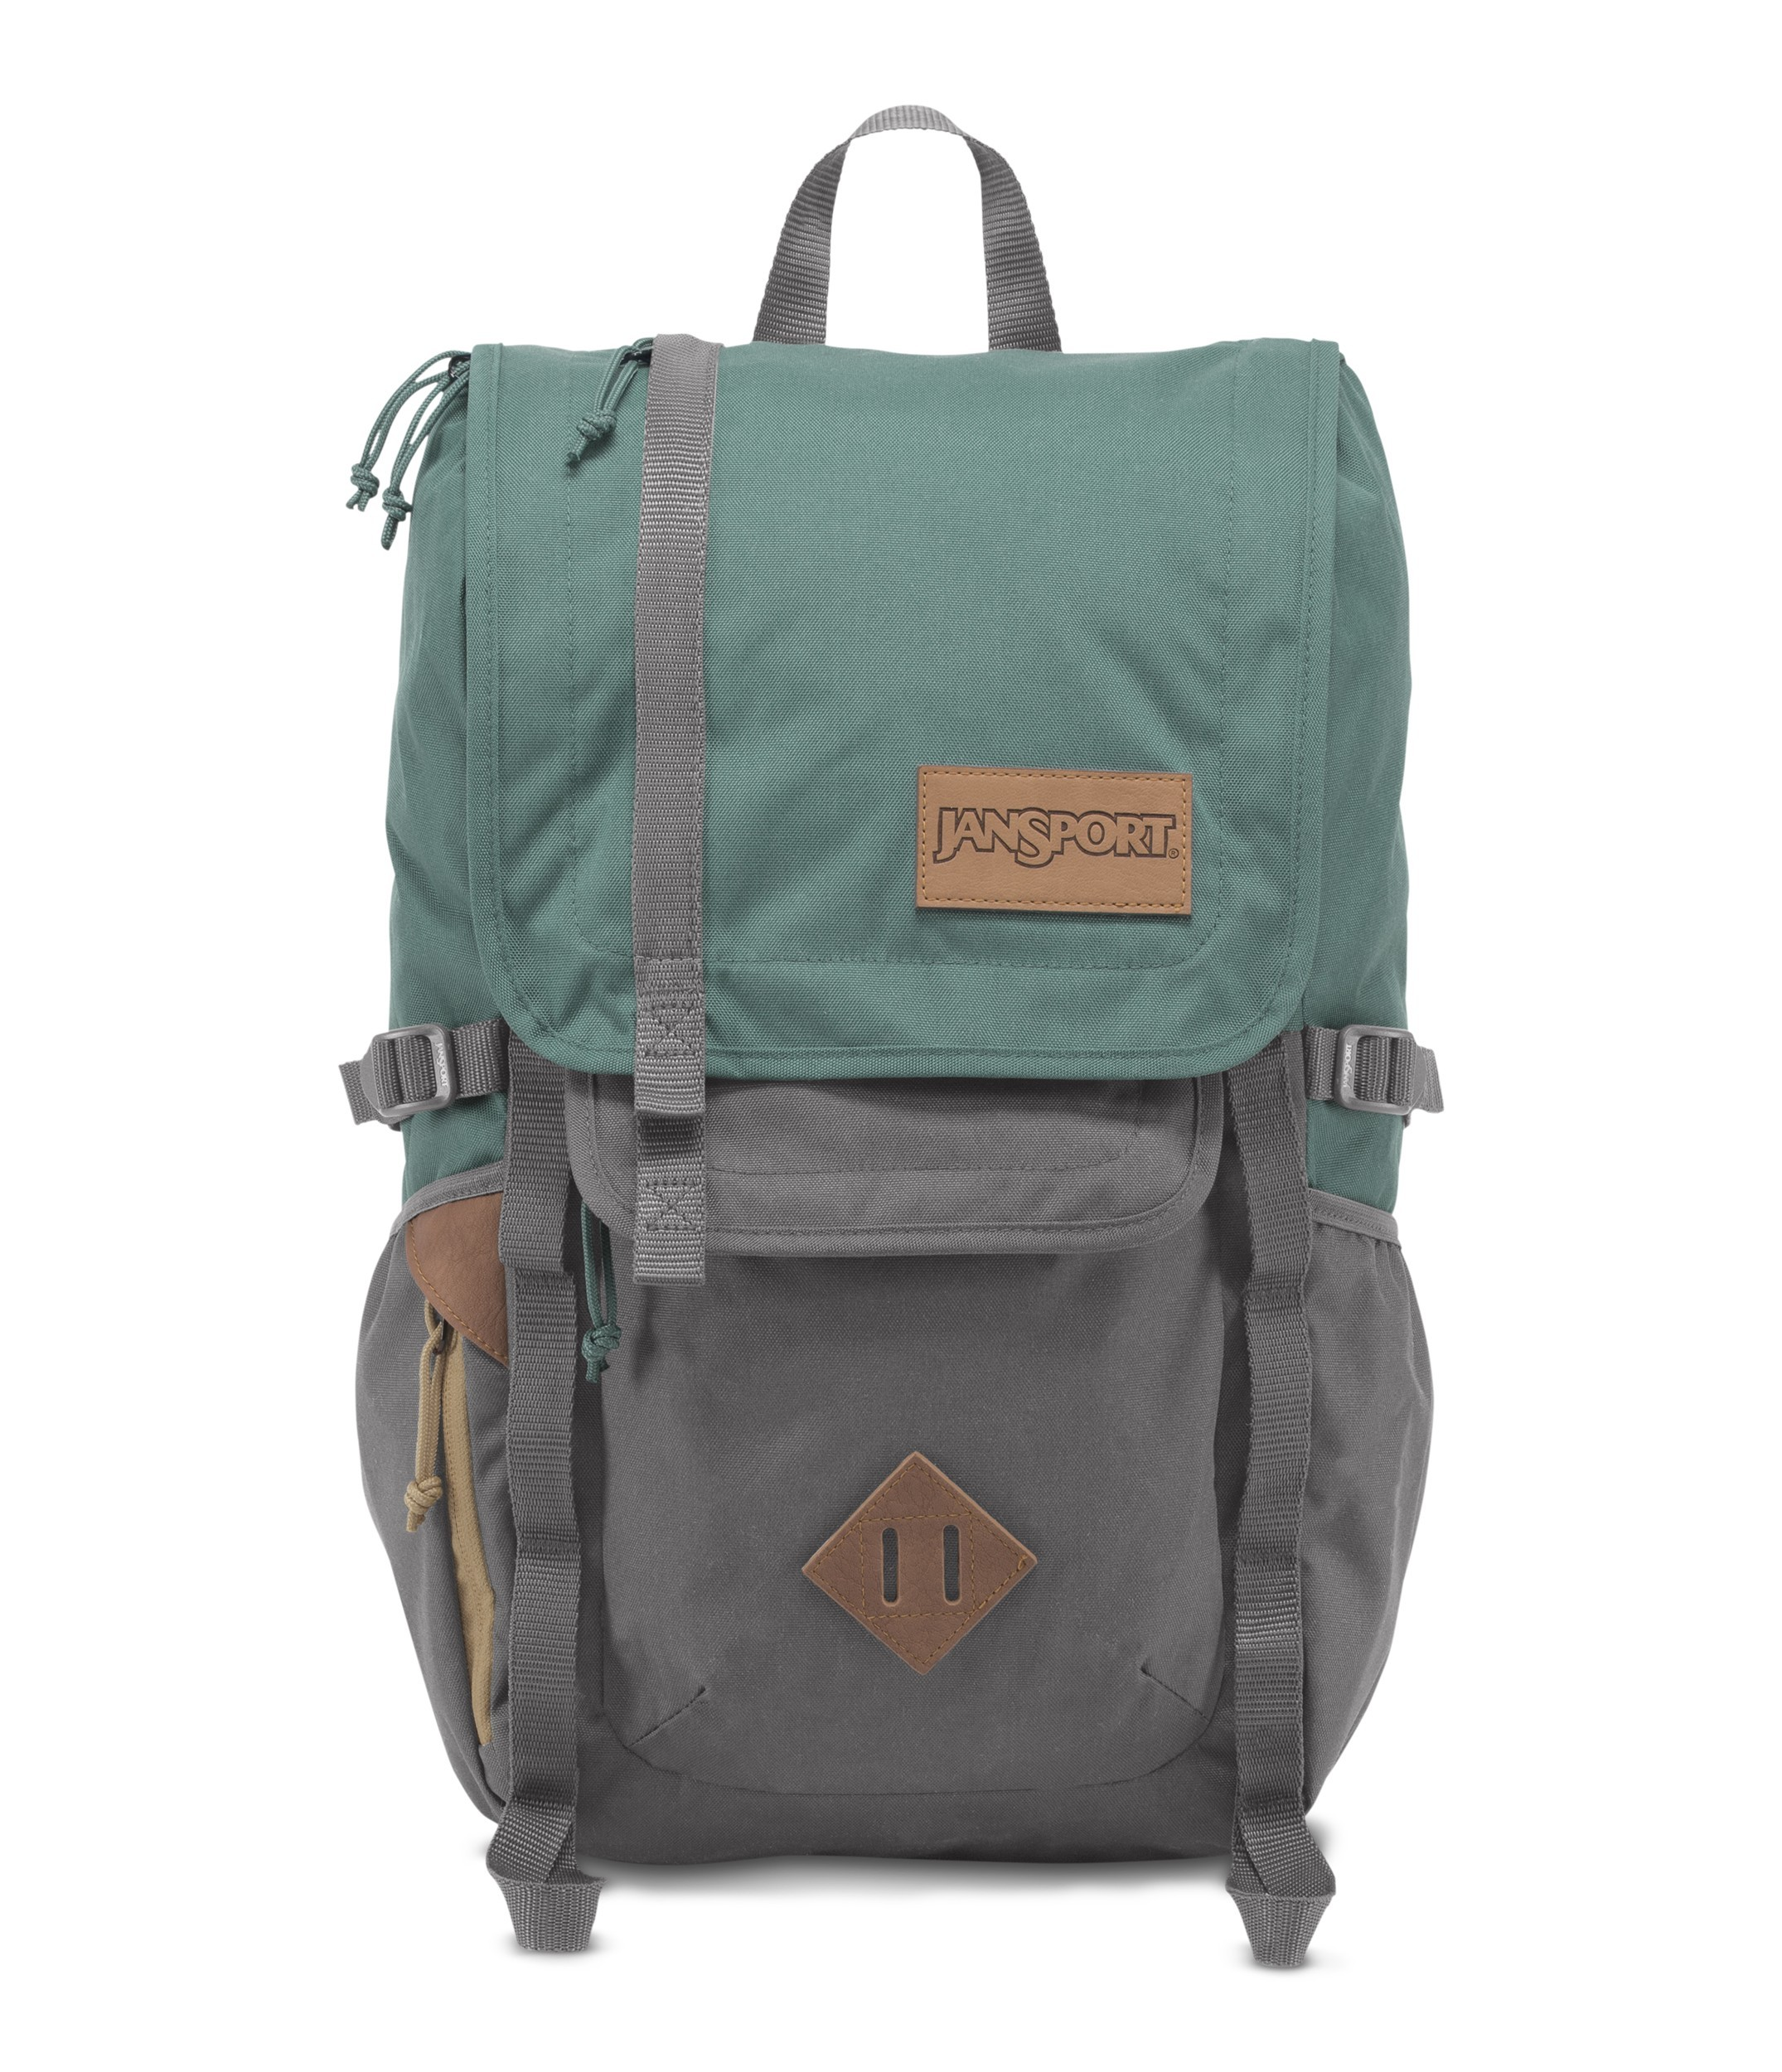 JanSport รุ่น HATCHET - FROST TEAL